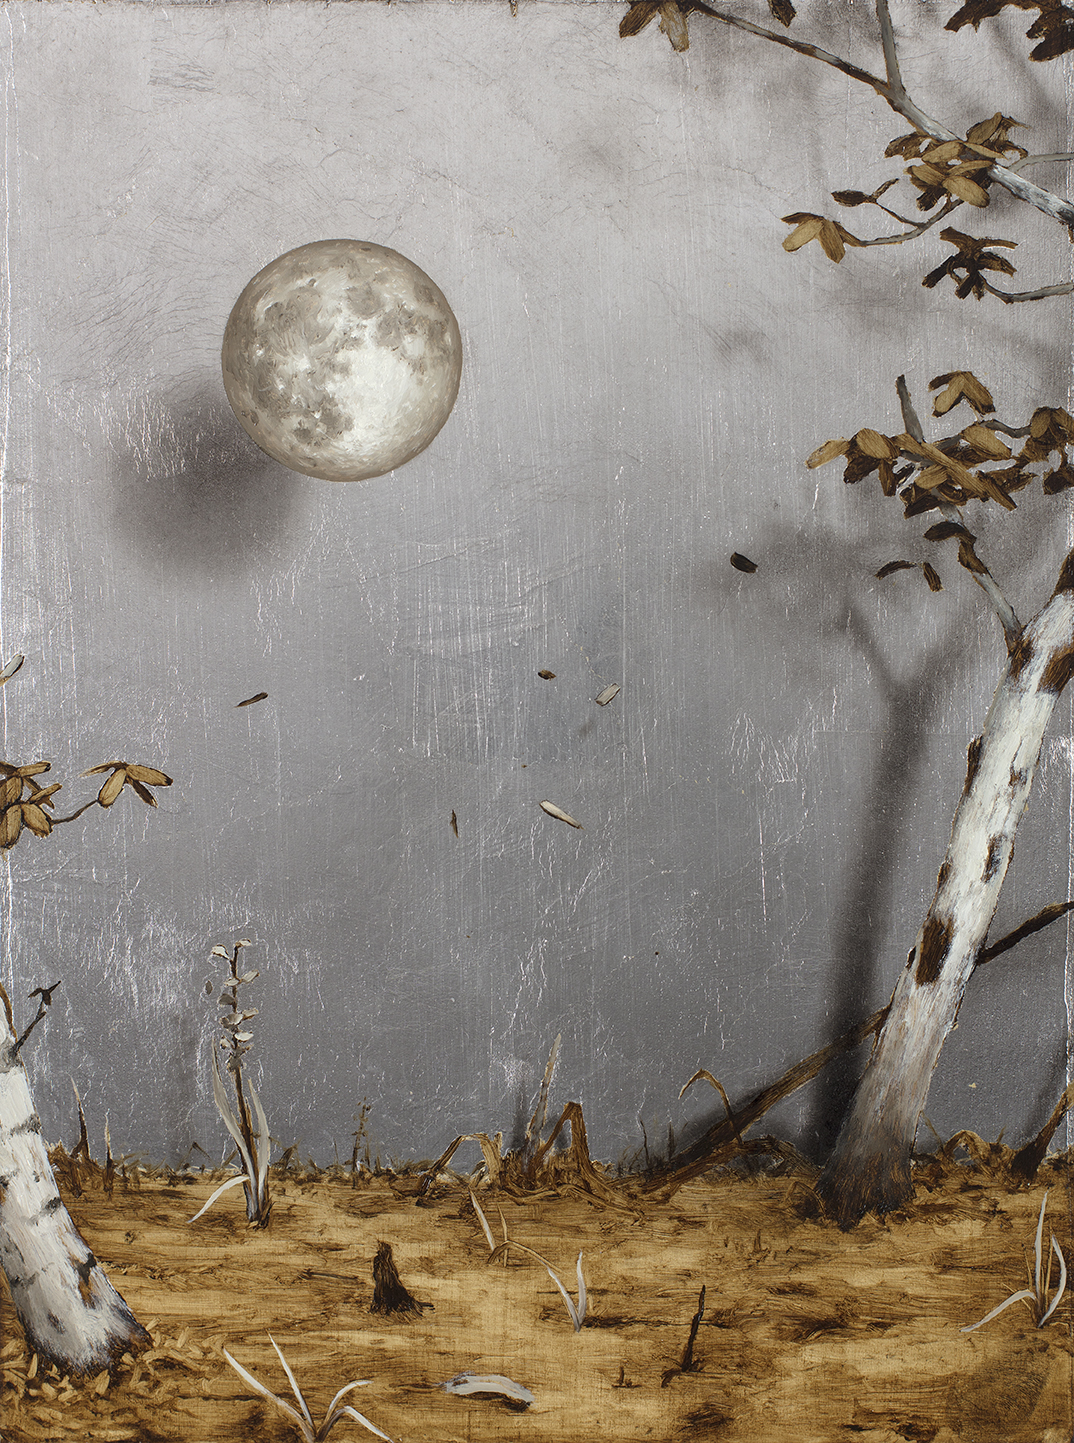 The Moon Room , 2016. Oil and silver on wood panel. 9 x 12 inches.